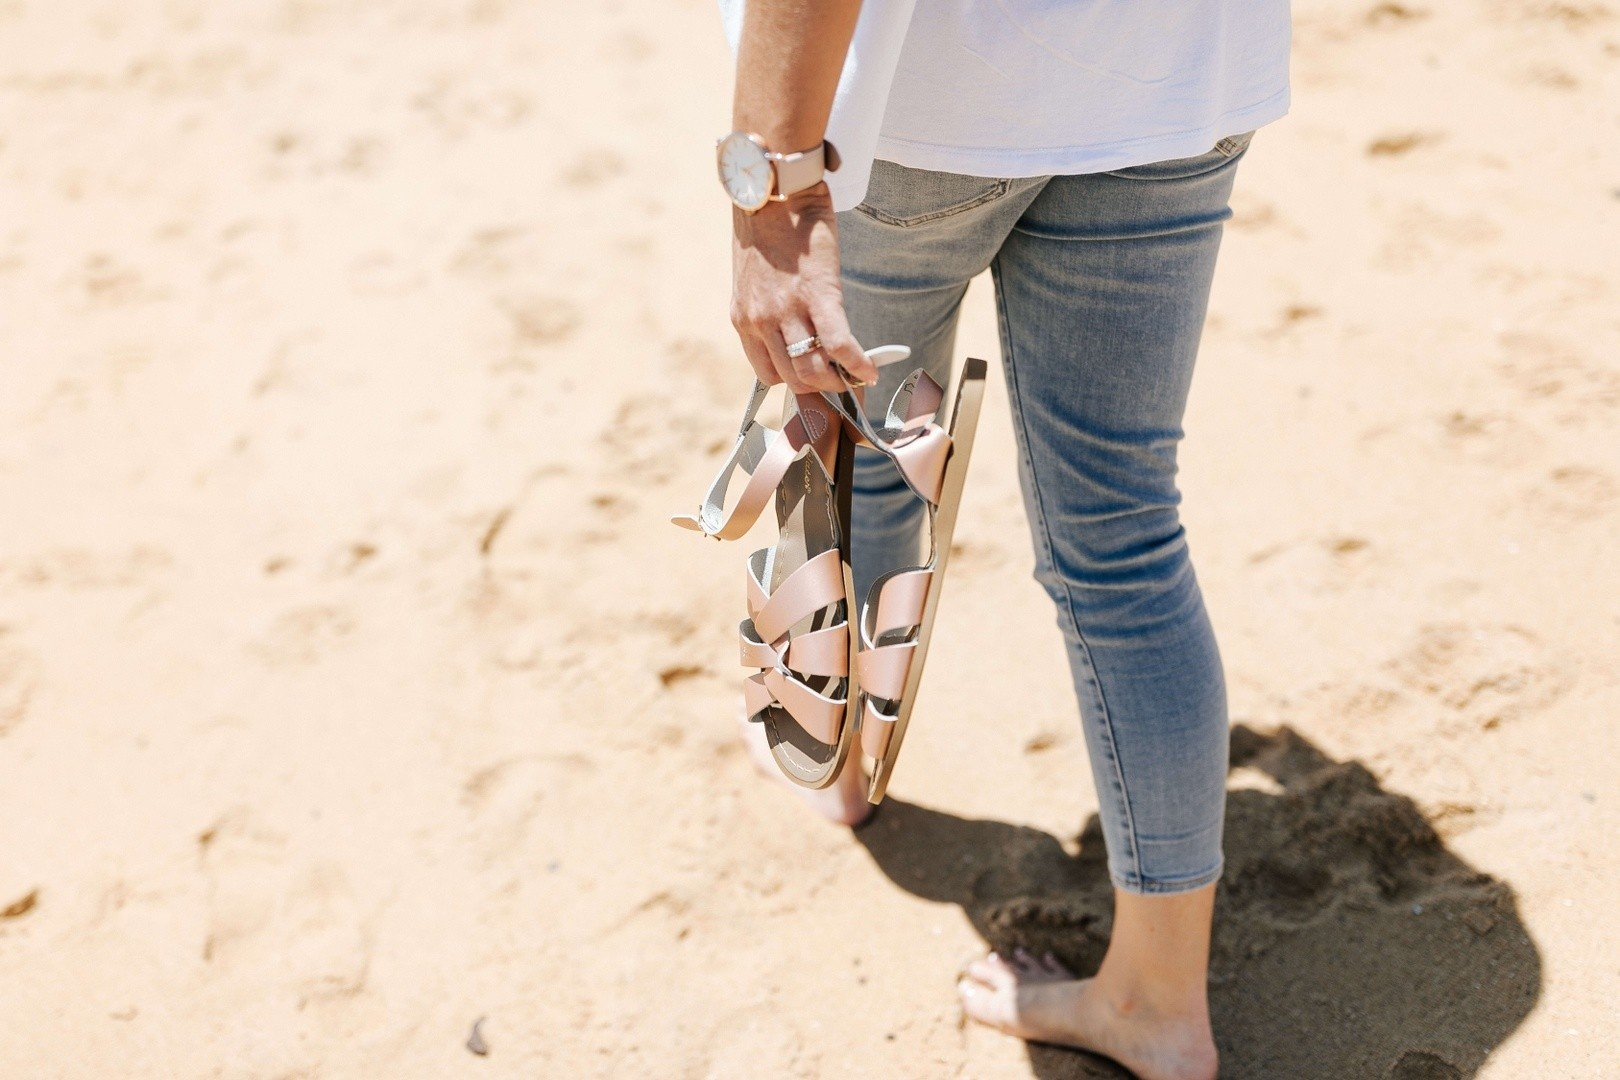 Dr Emily Amos from MORE THAN MILK walking on the beach with shoes in hand